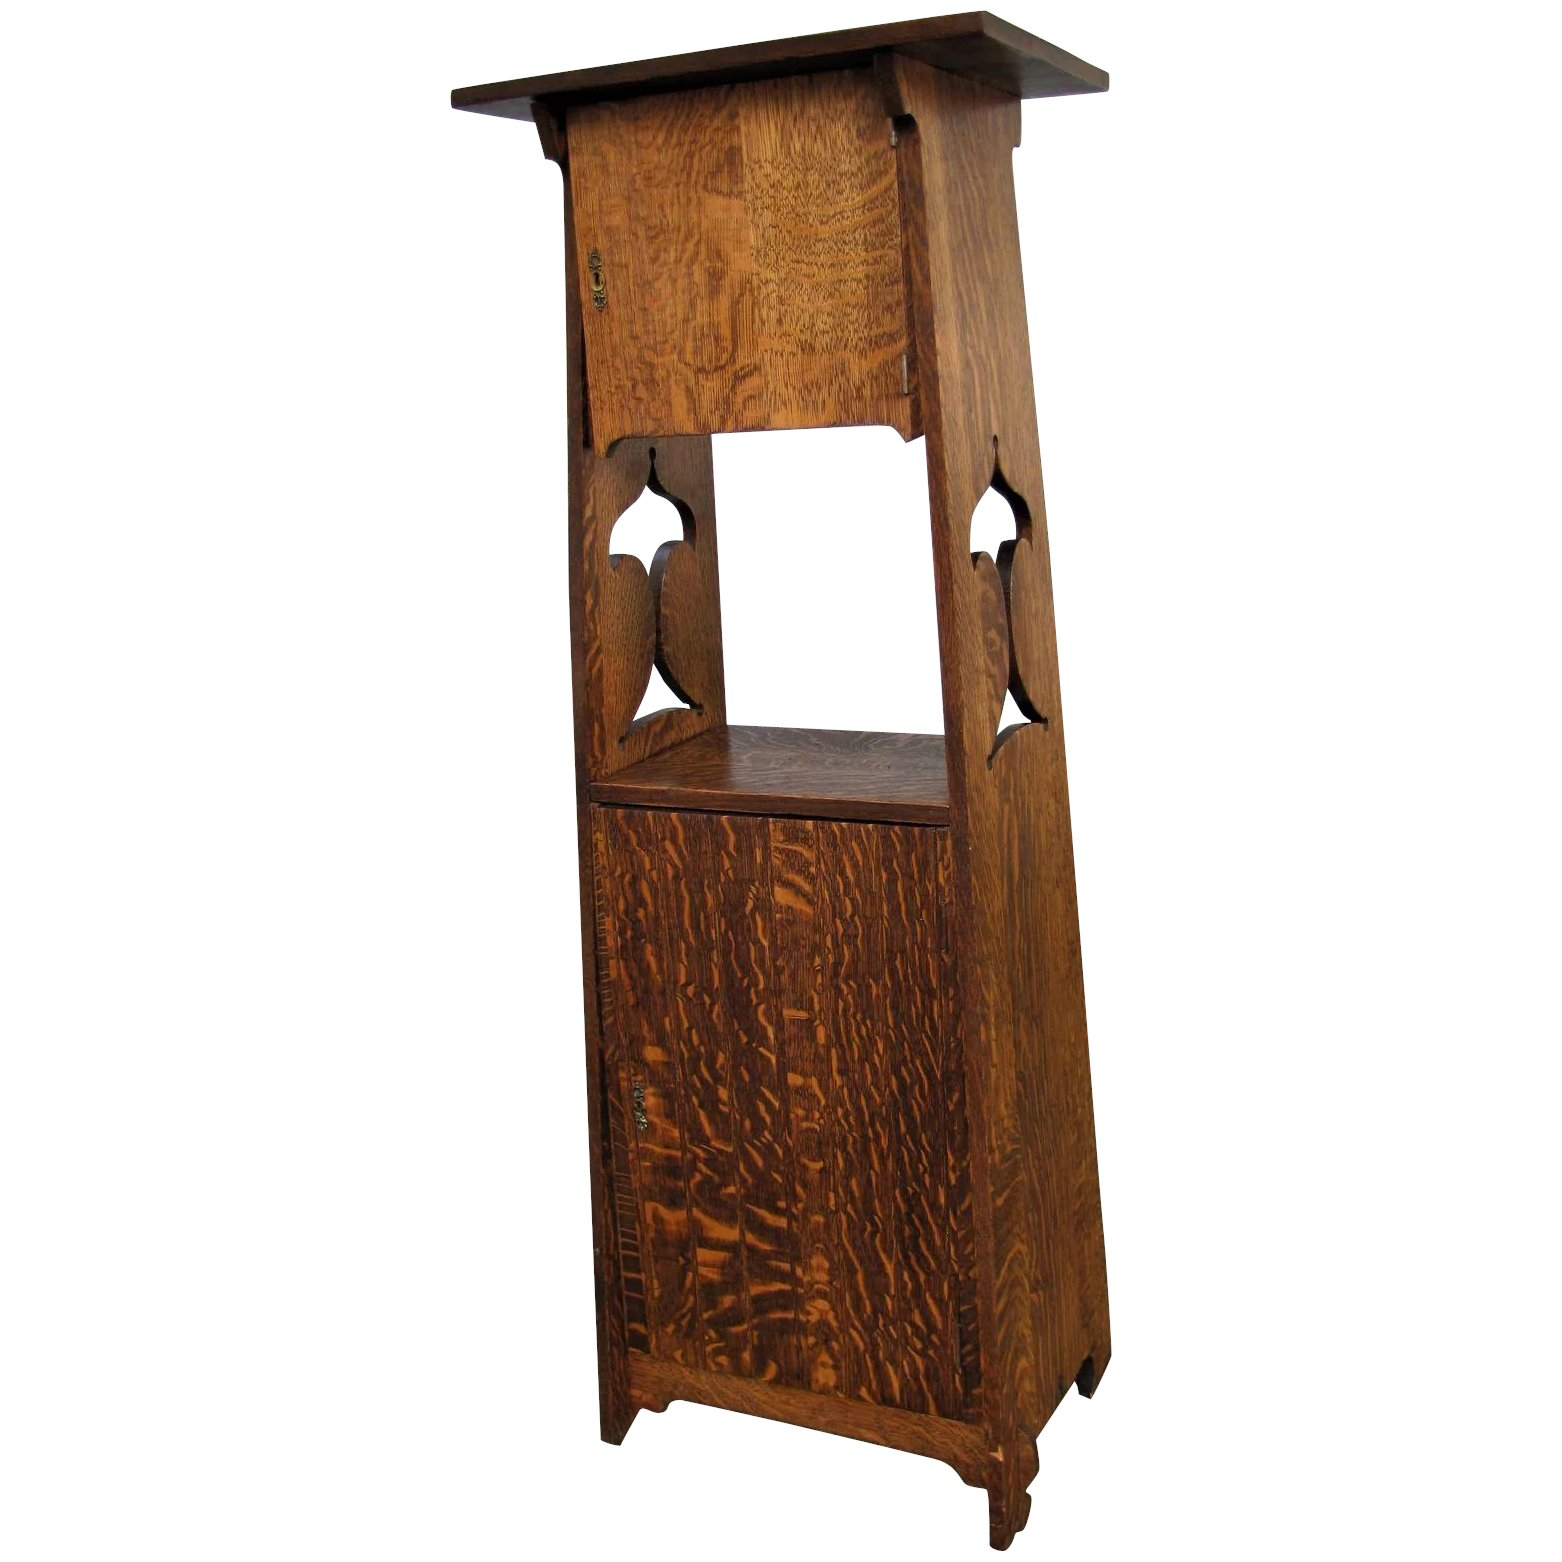 Antique Tall Liquor Cabinet w5037. Click to expand - Antique Tall Liquor Cabinet W5037 : Antique Mission Furniture Ruby